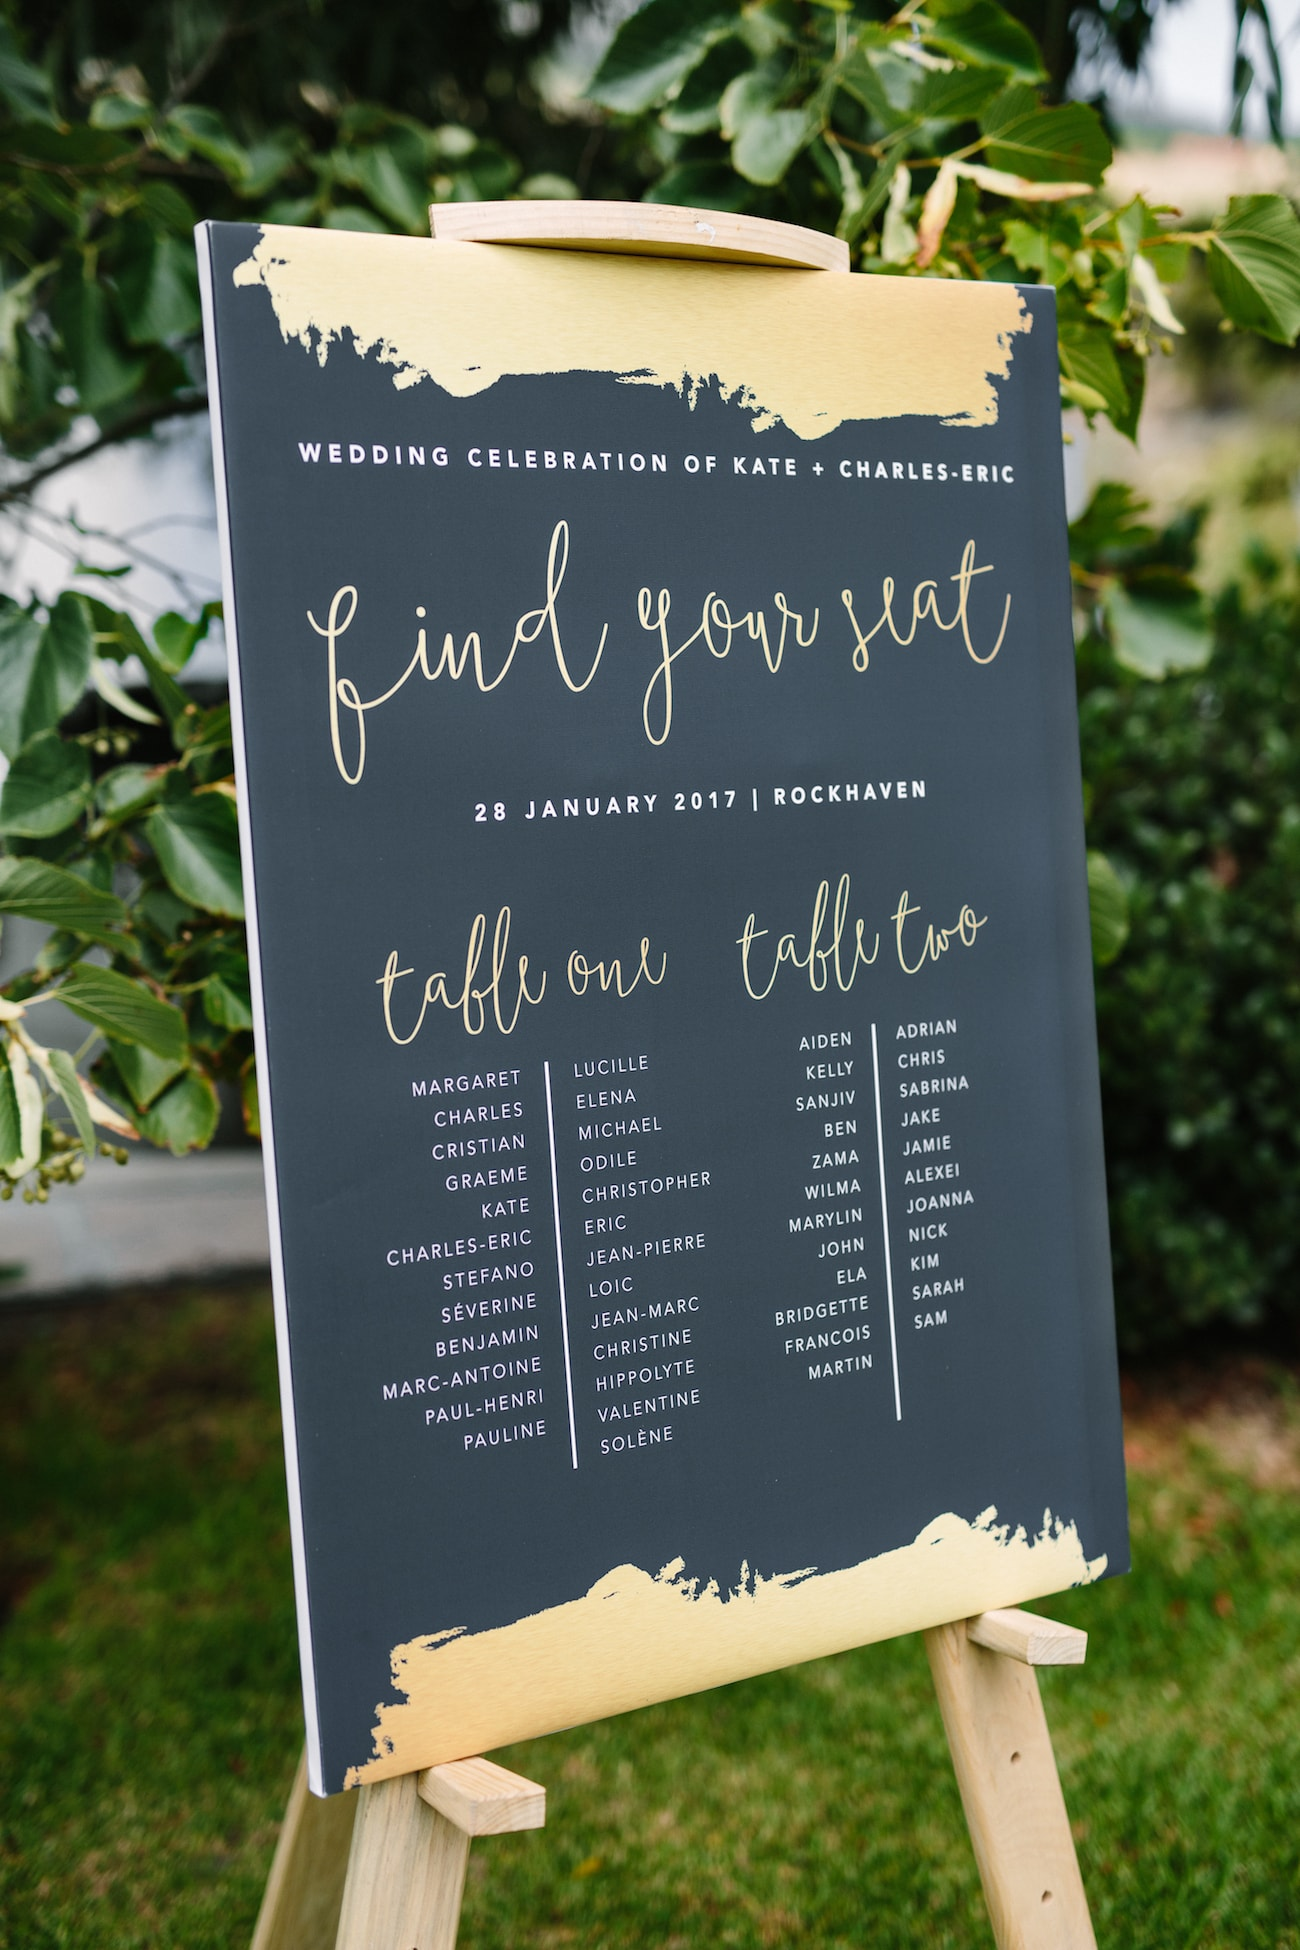 Black & Gold Table Plan | Image: Tasha Seccombe